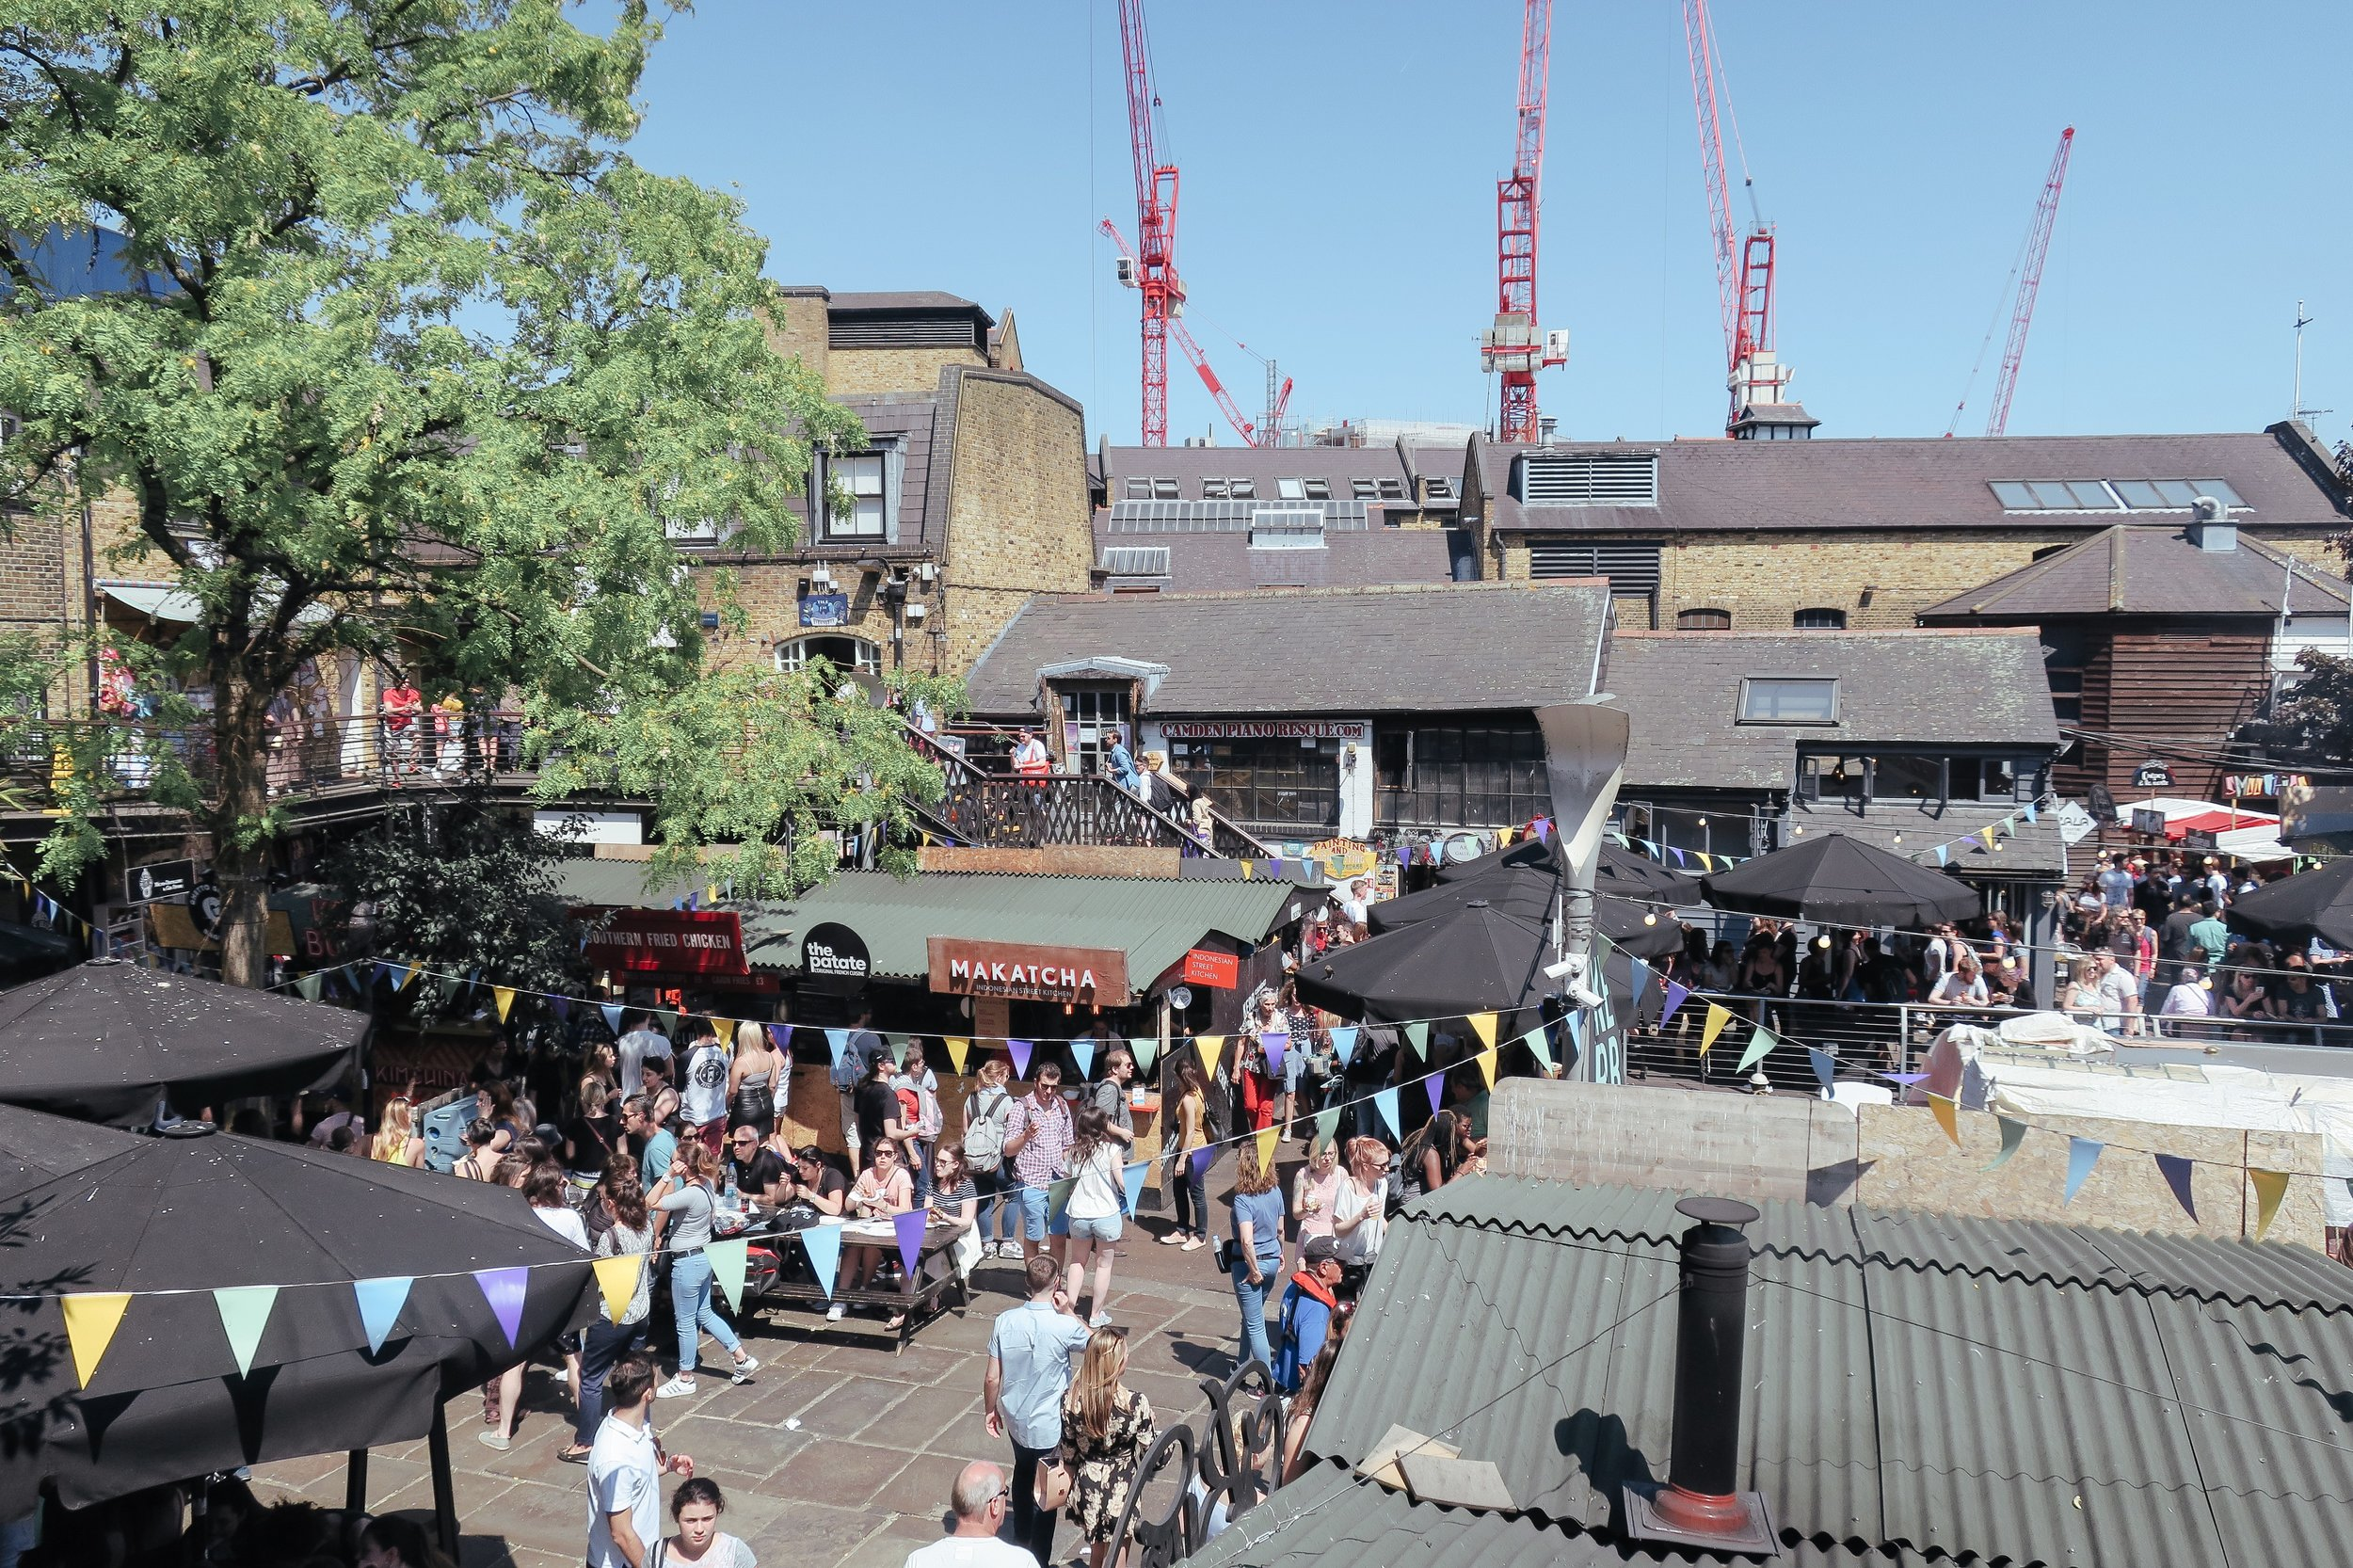 Day 17 London - Victoria station > Camden Market